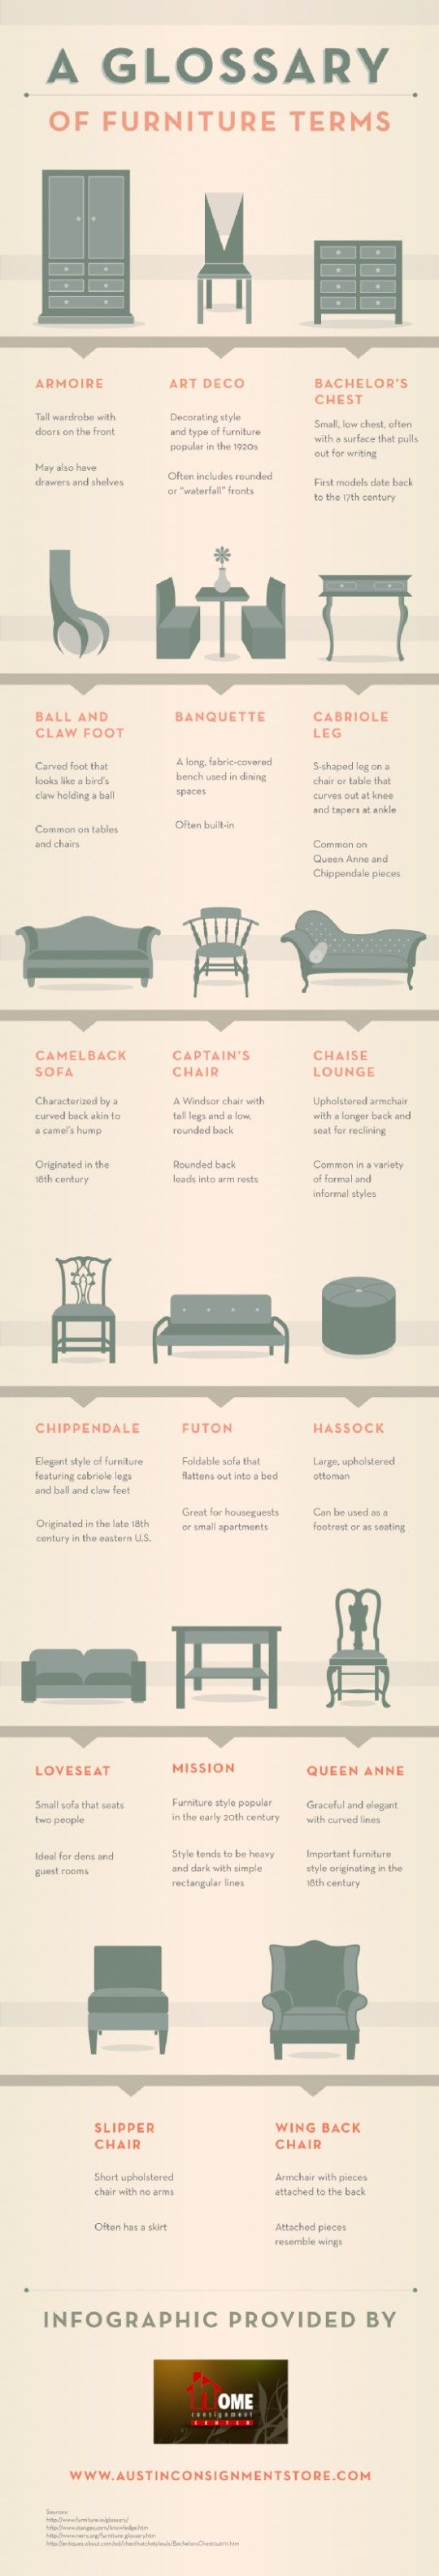 18 best images about chair styles and types on pinterest for Chair design terminology